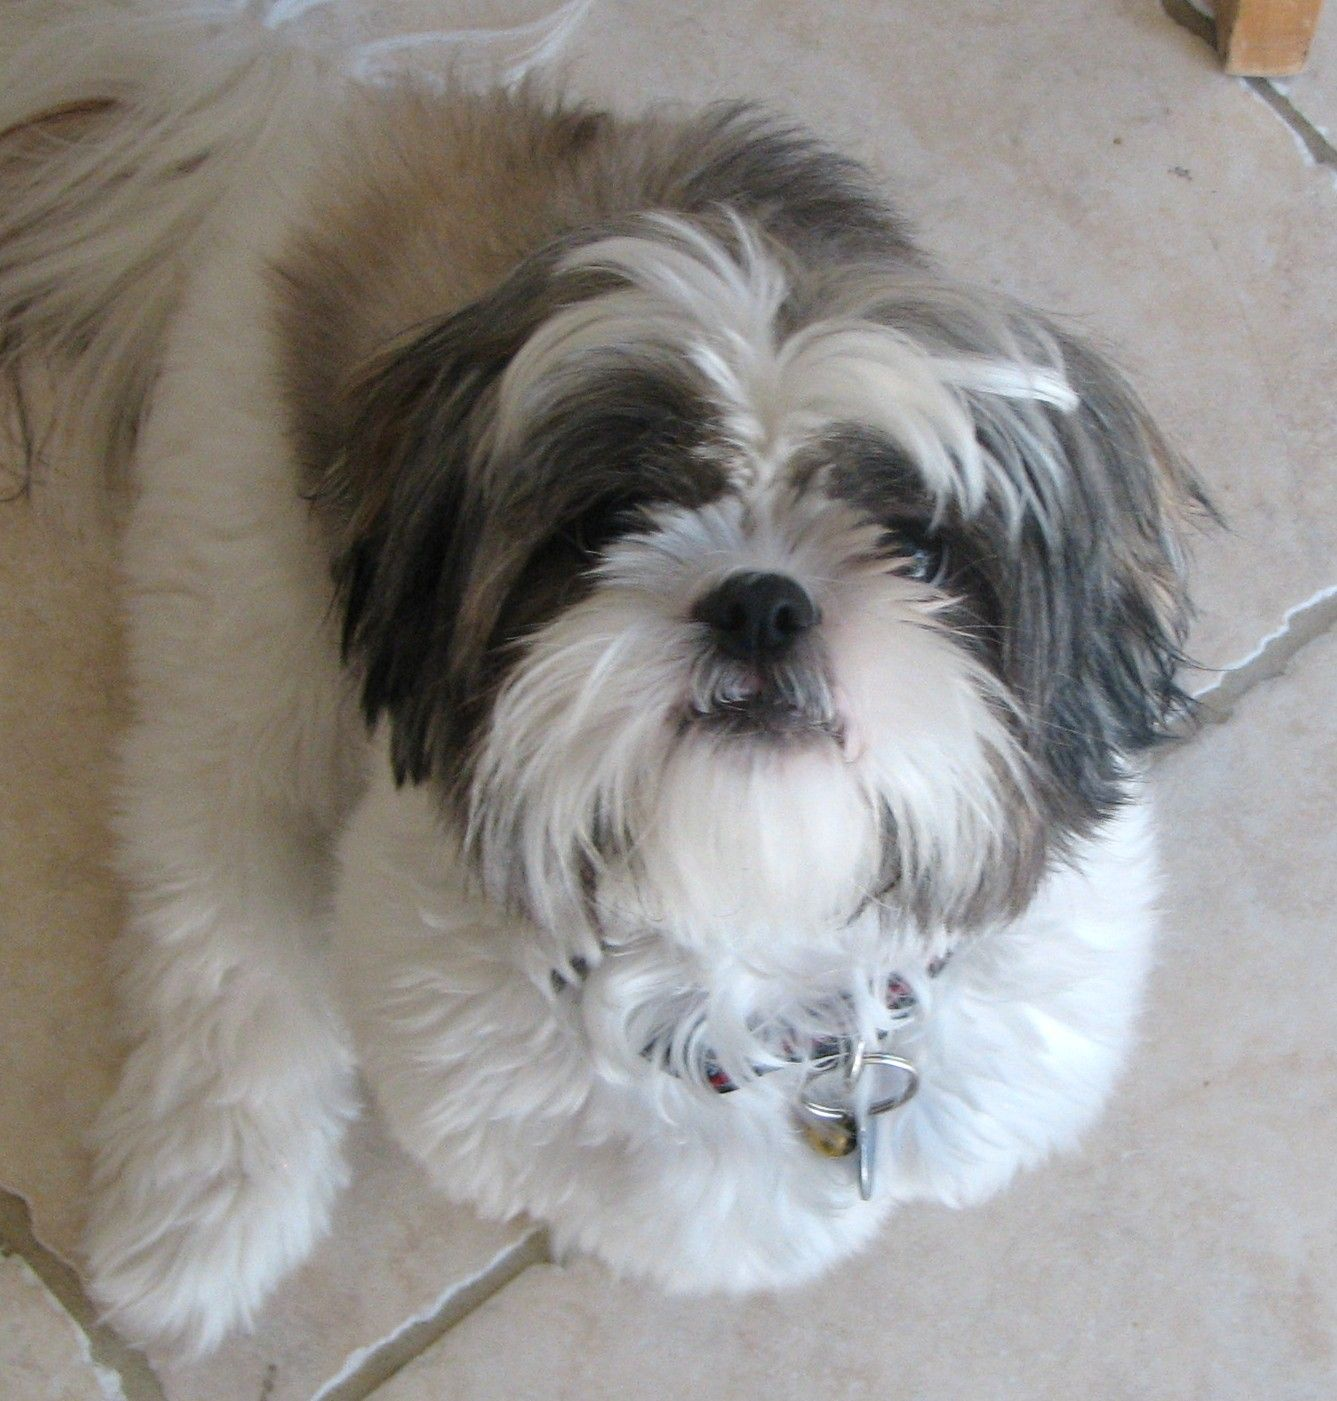 Black And White Shih Tzu Dogs Dog Vs Lego Shih Tzu Shih Tzu